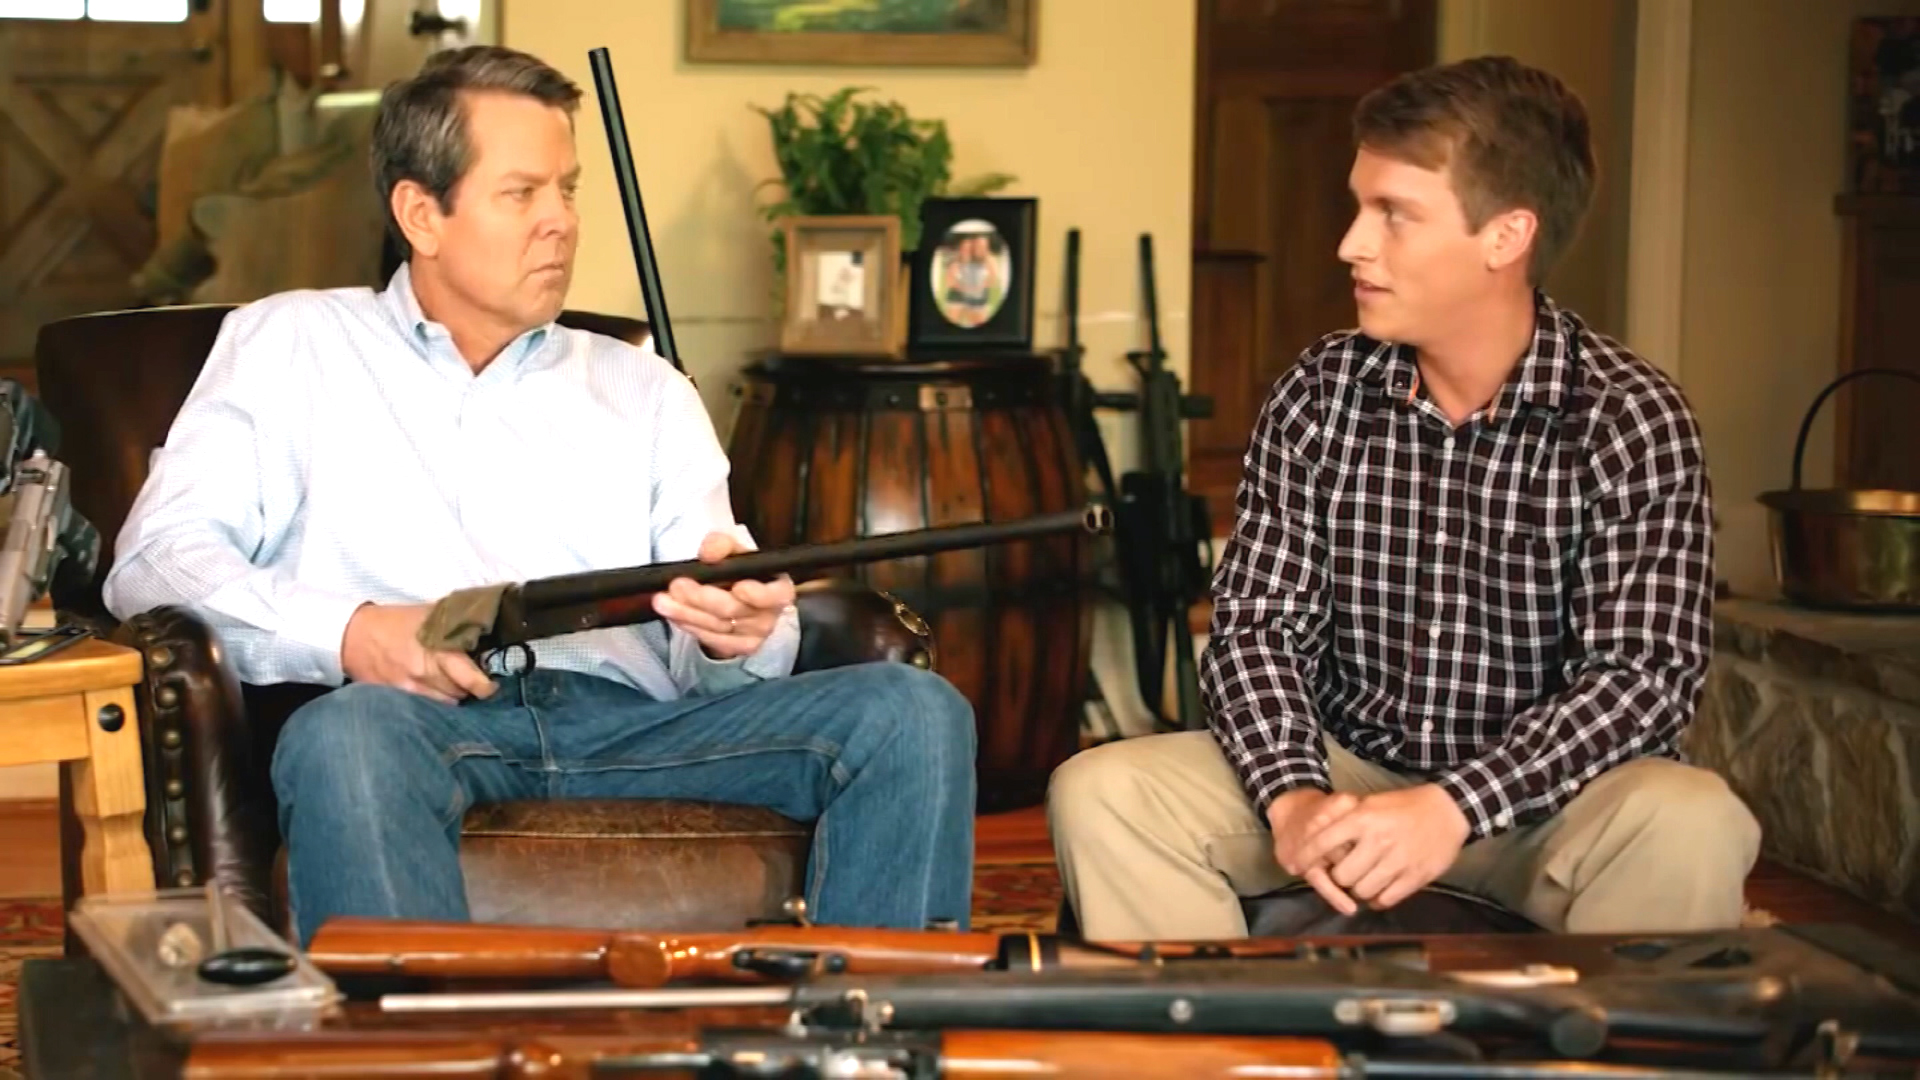 GOP candidate aims gun at teen in campaign ad - CNN Video